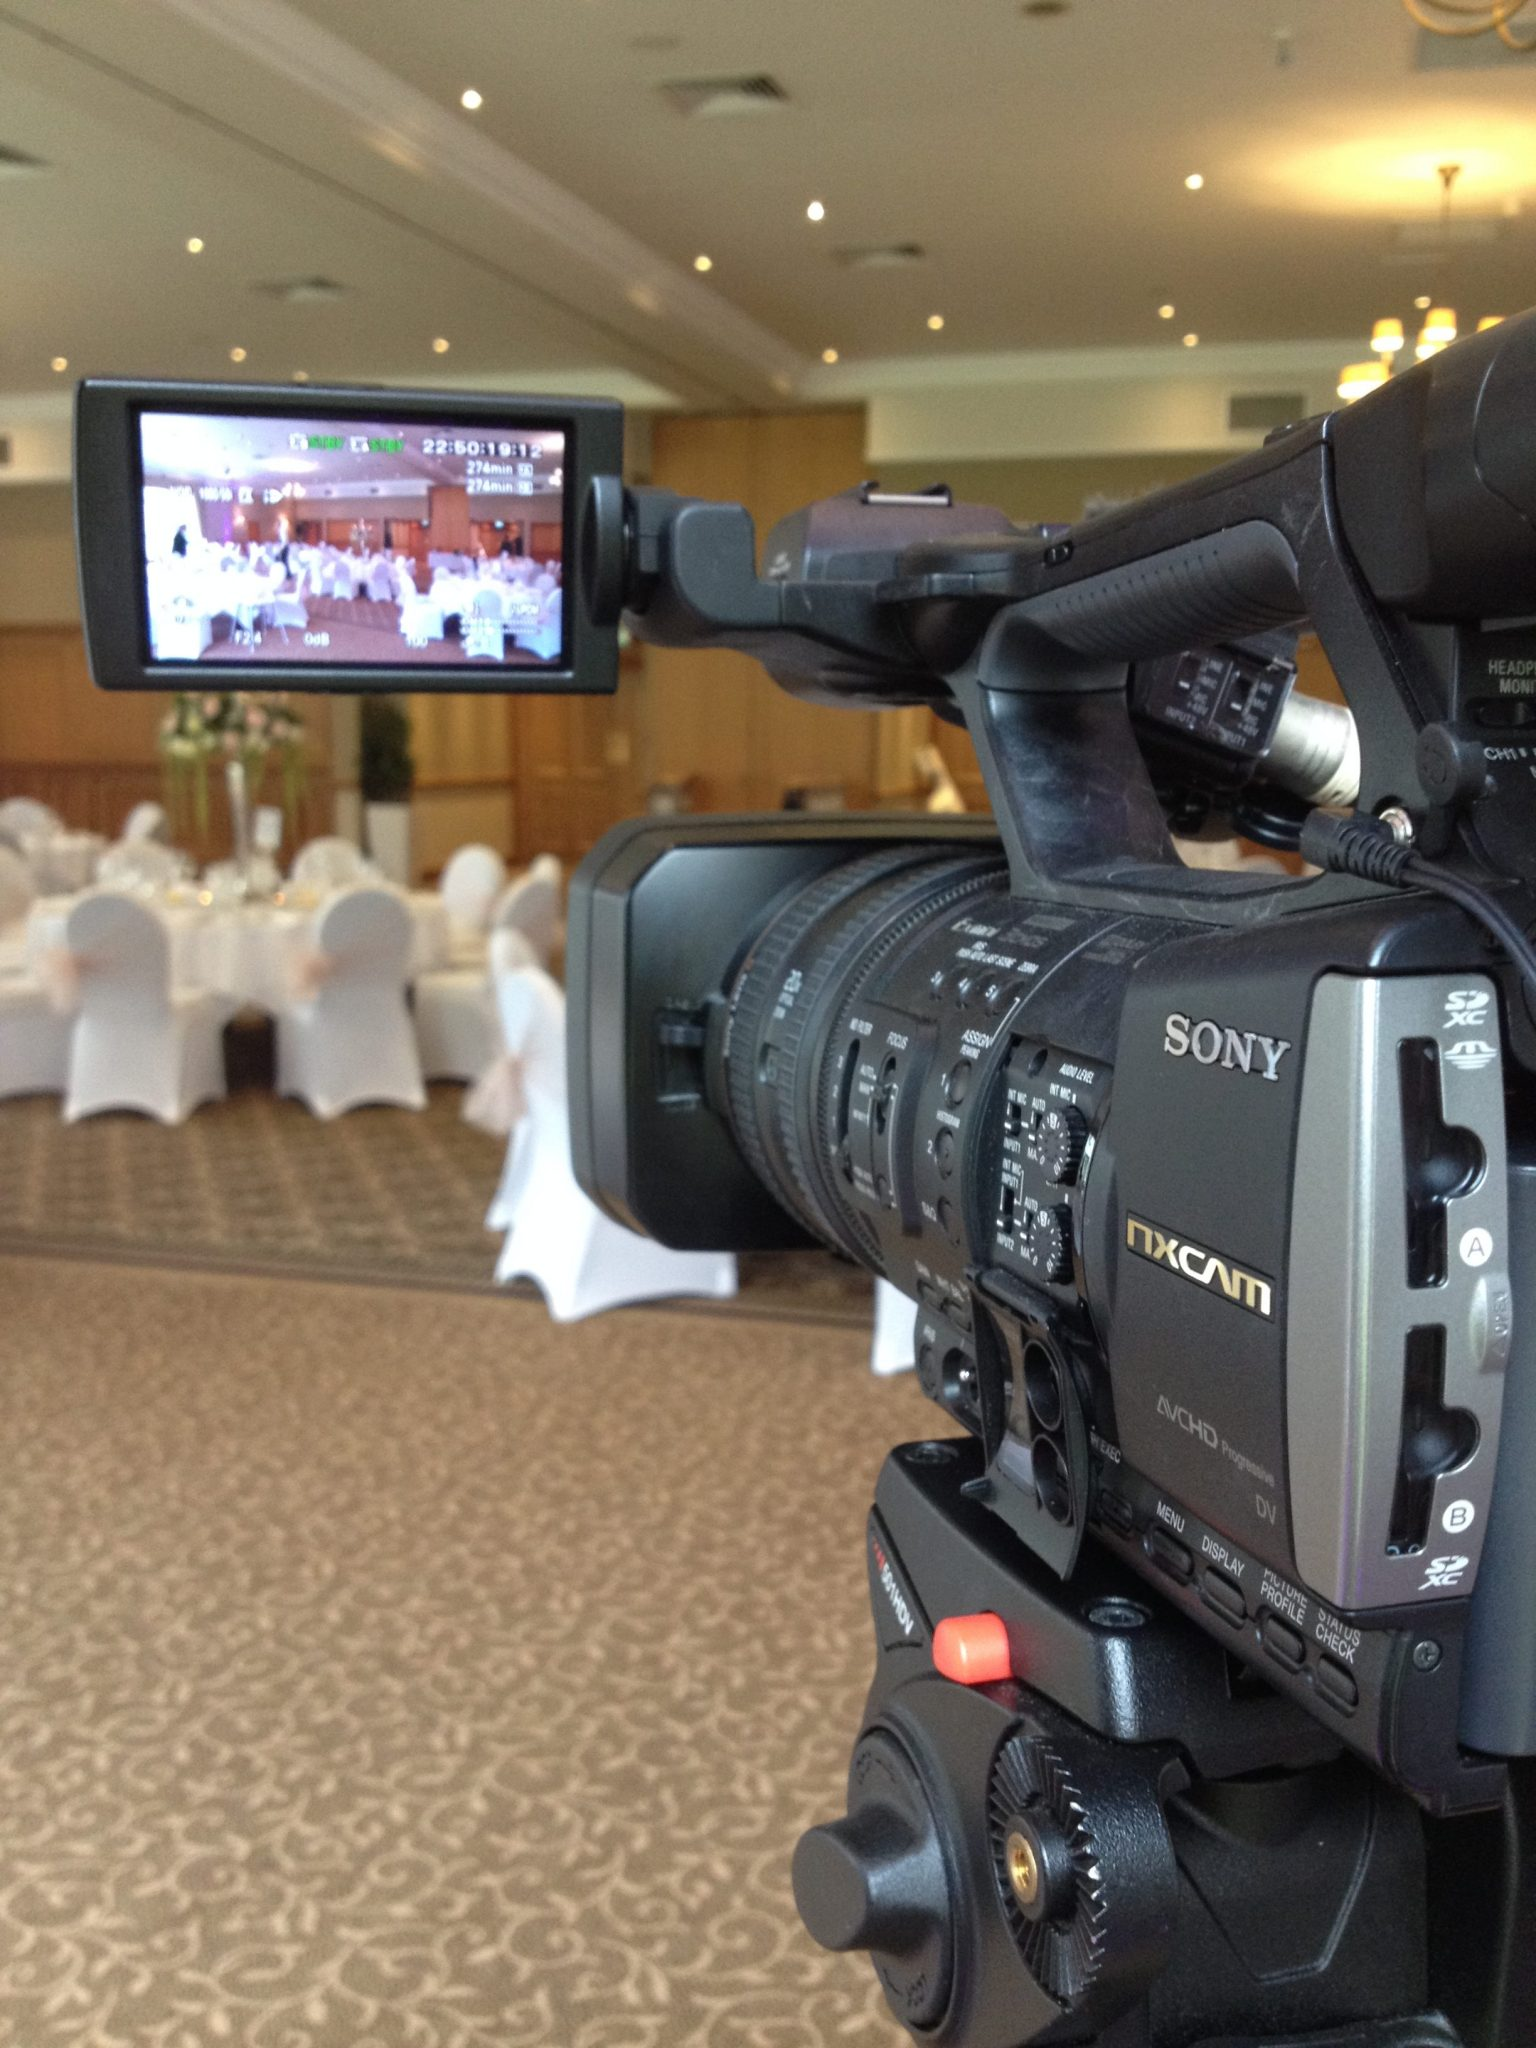 Top reasons to have a wedding video